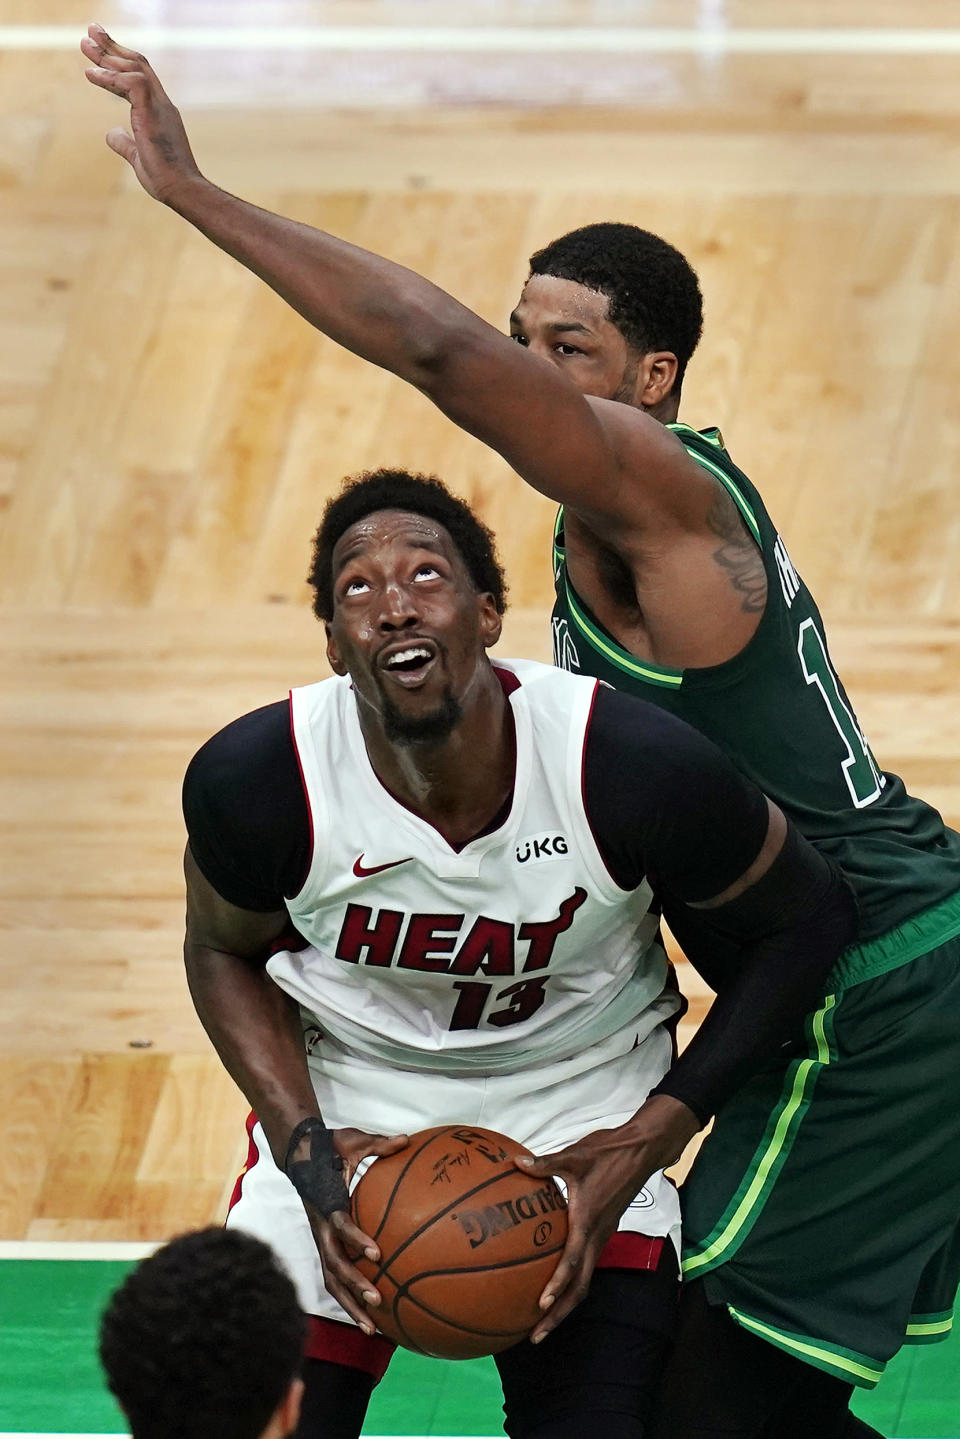 Miami Heat center Bam Adebayo, left, looks to shoot while covered by Boston Celtics center Tristan Thompson during the second half of an NBA basketball game Tuesday, May 11, 2021, in Boston. (AP Photo/Charles Krupa)